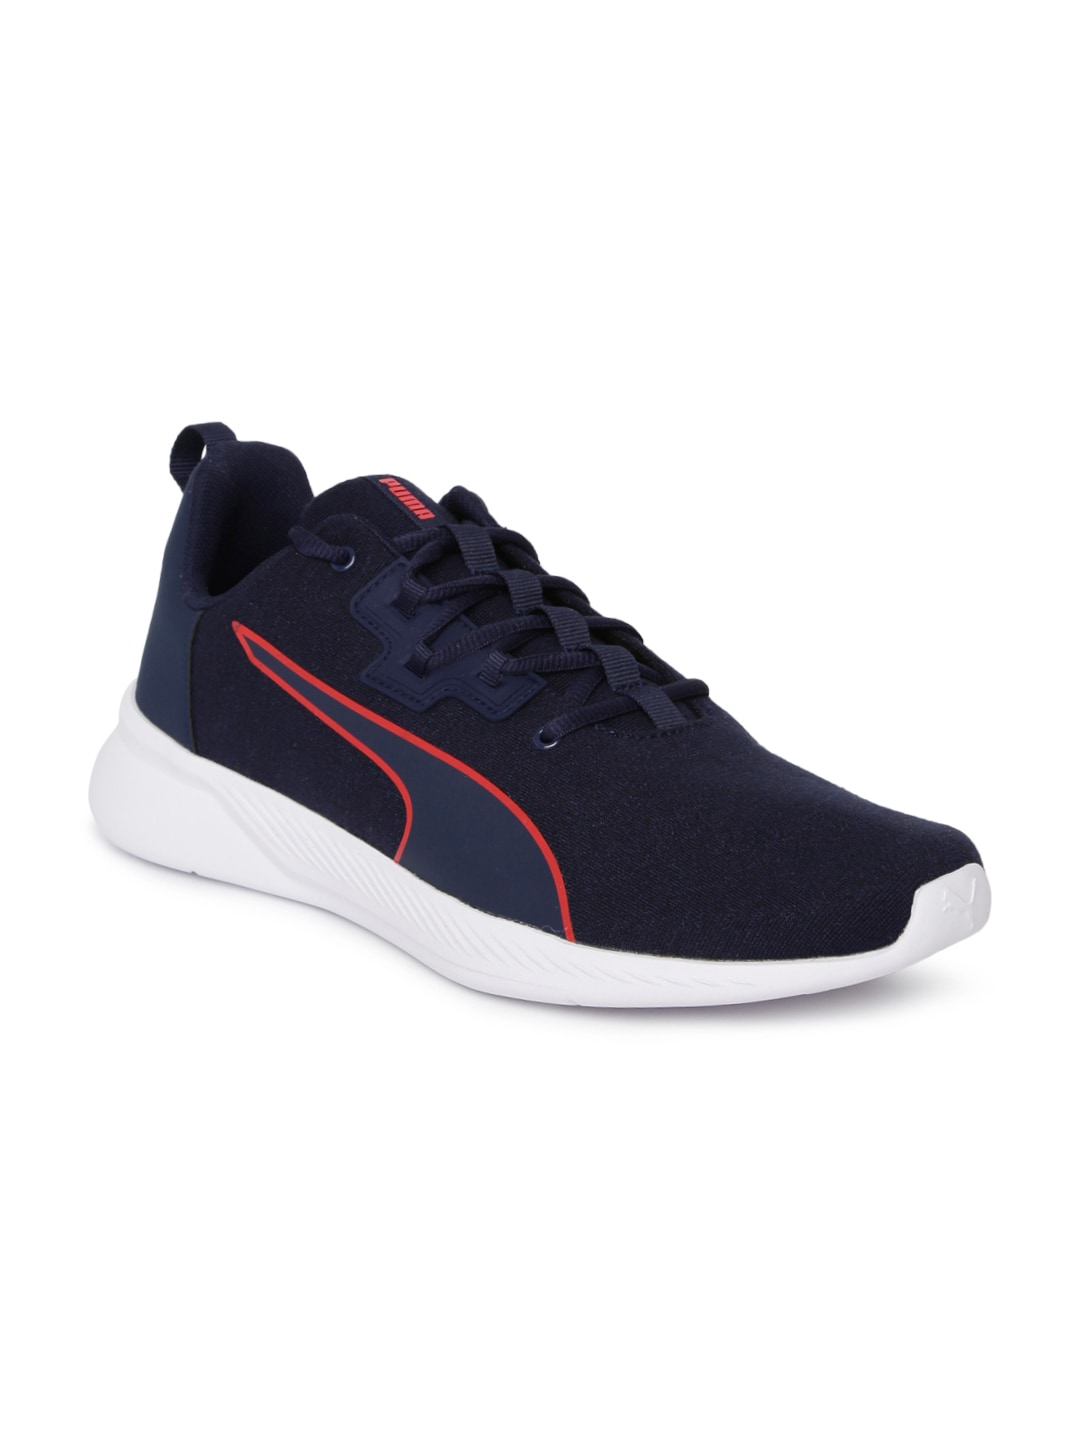 f27d9011012 Puma Shoes - Buy Puma Shoes for Men   Women Online in India